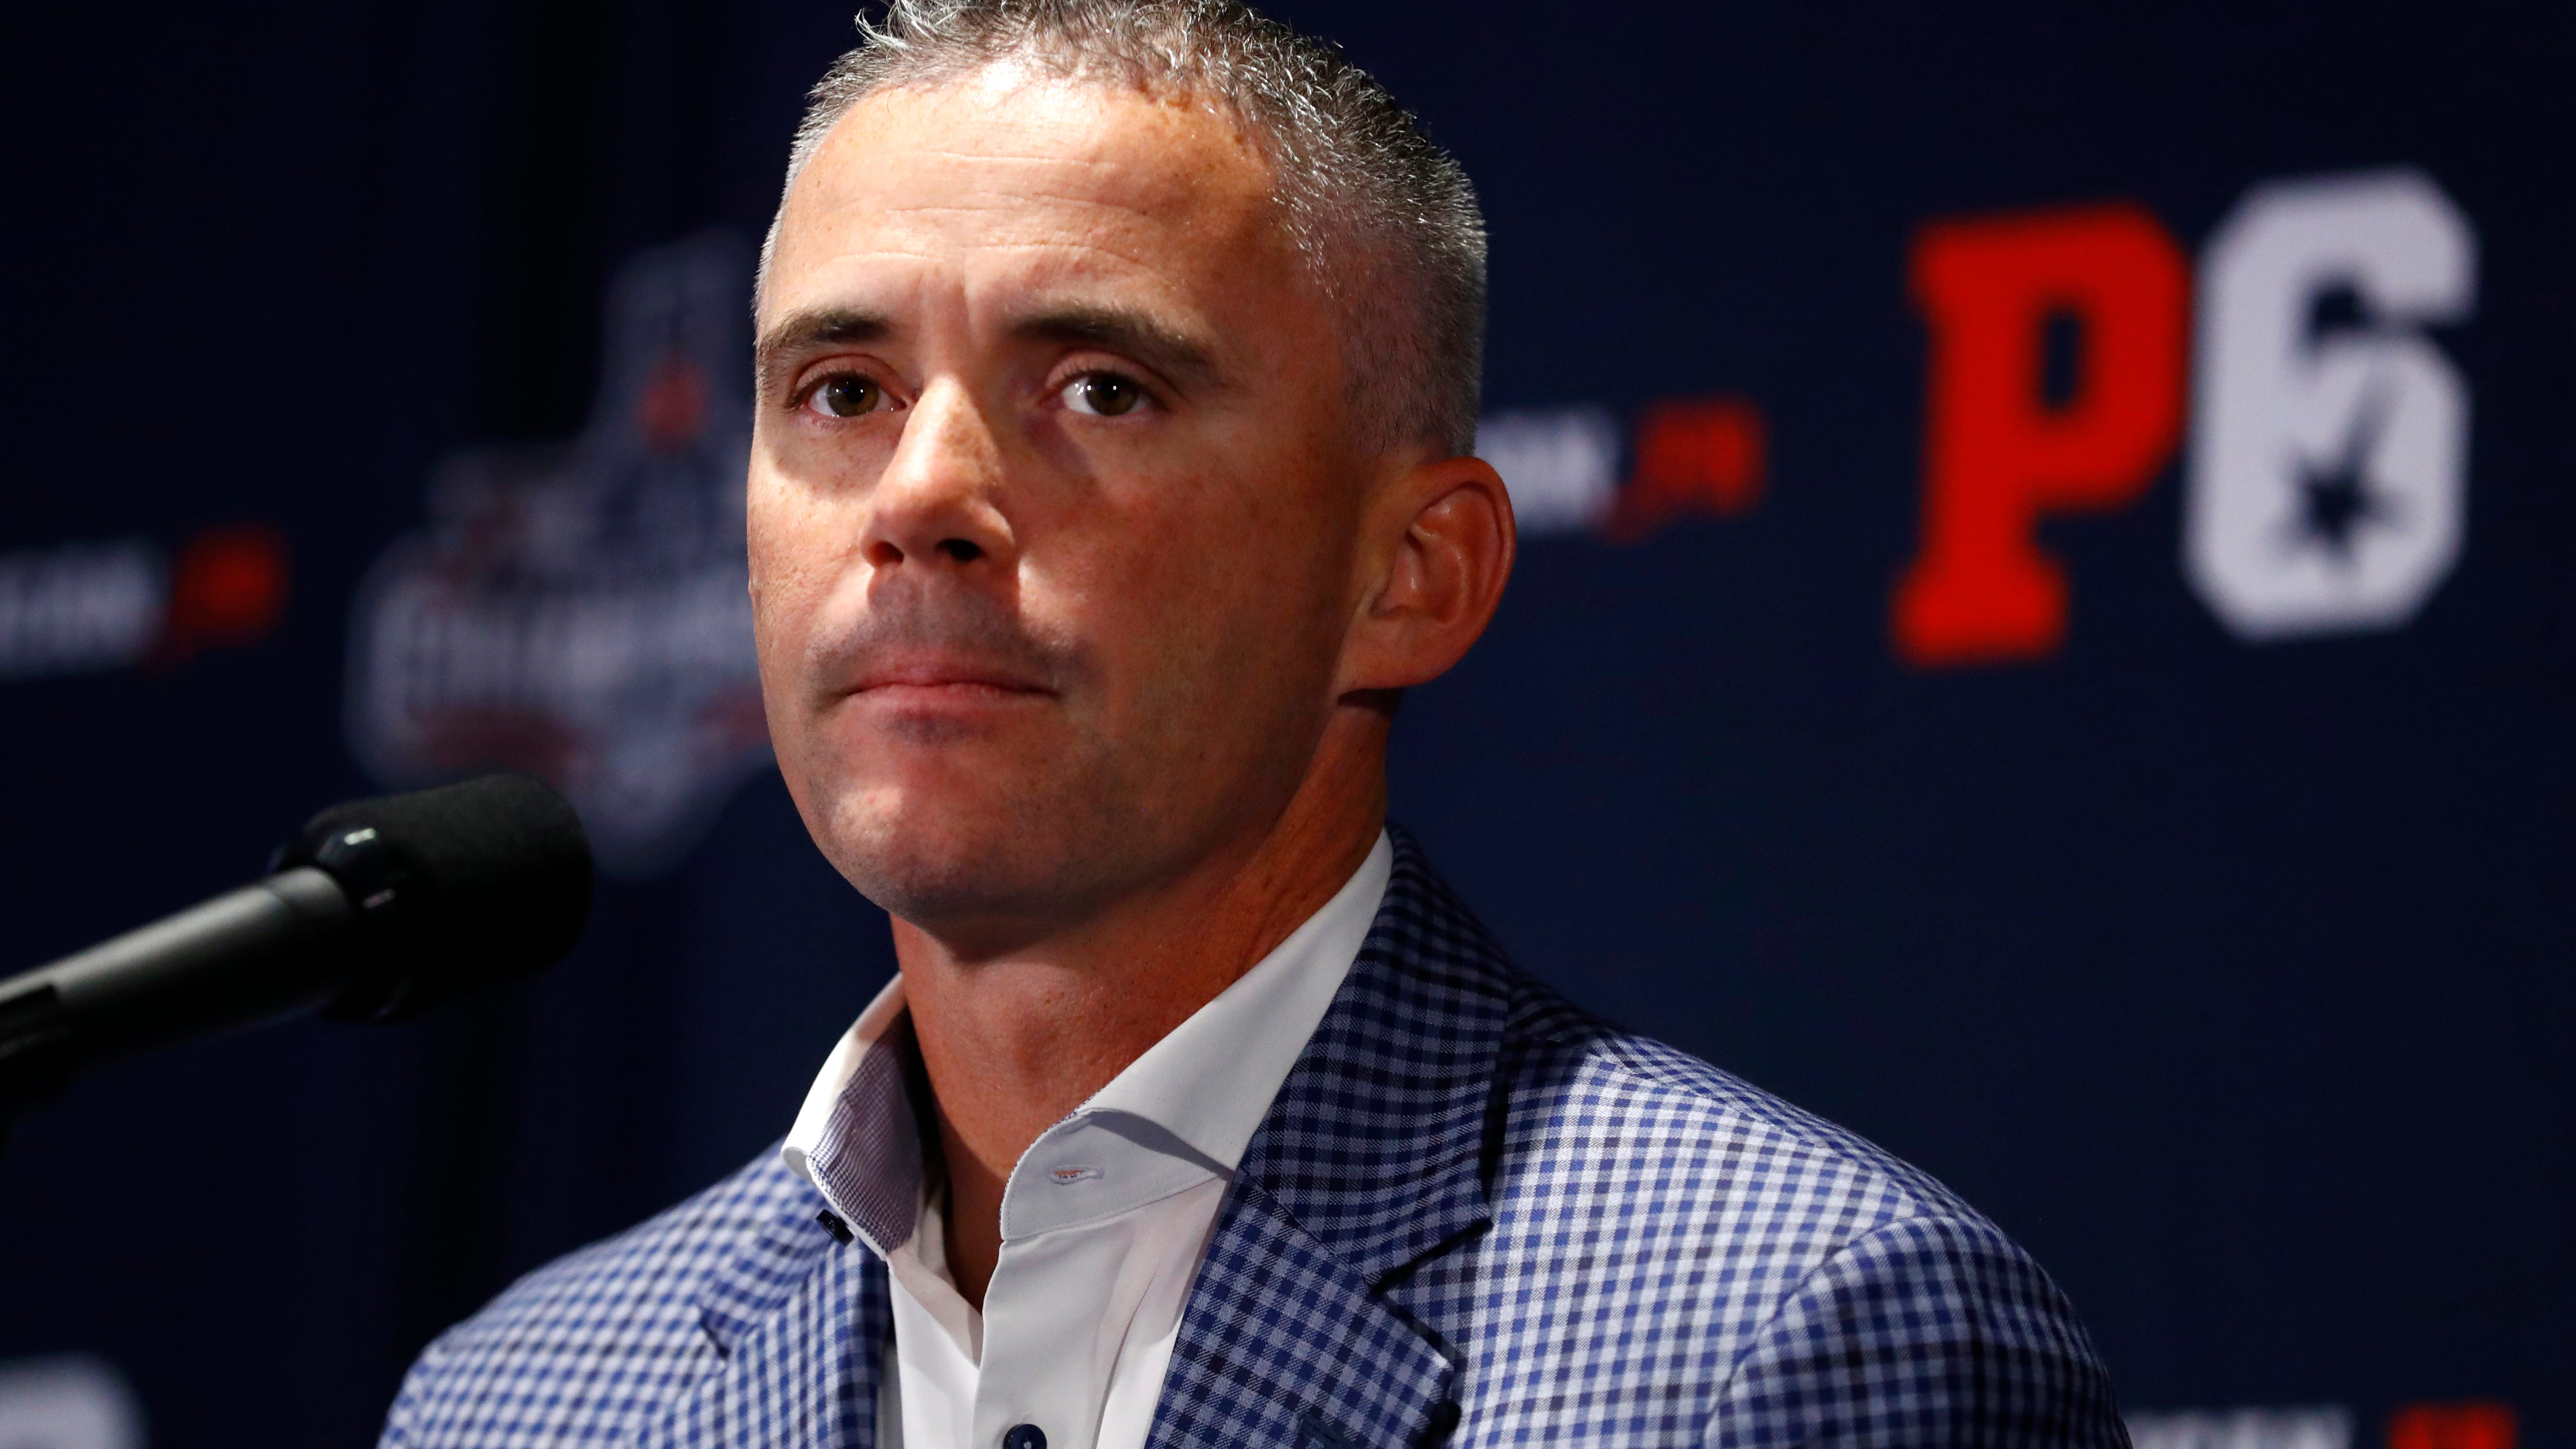 Press conference set, Norvell likely to be introduced as FSU's next coach